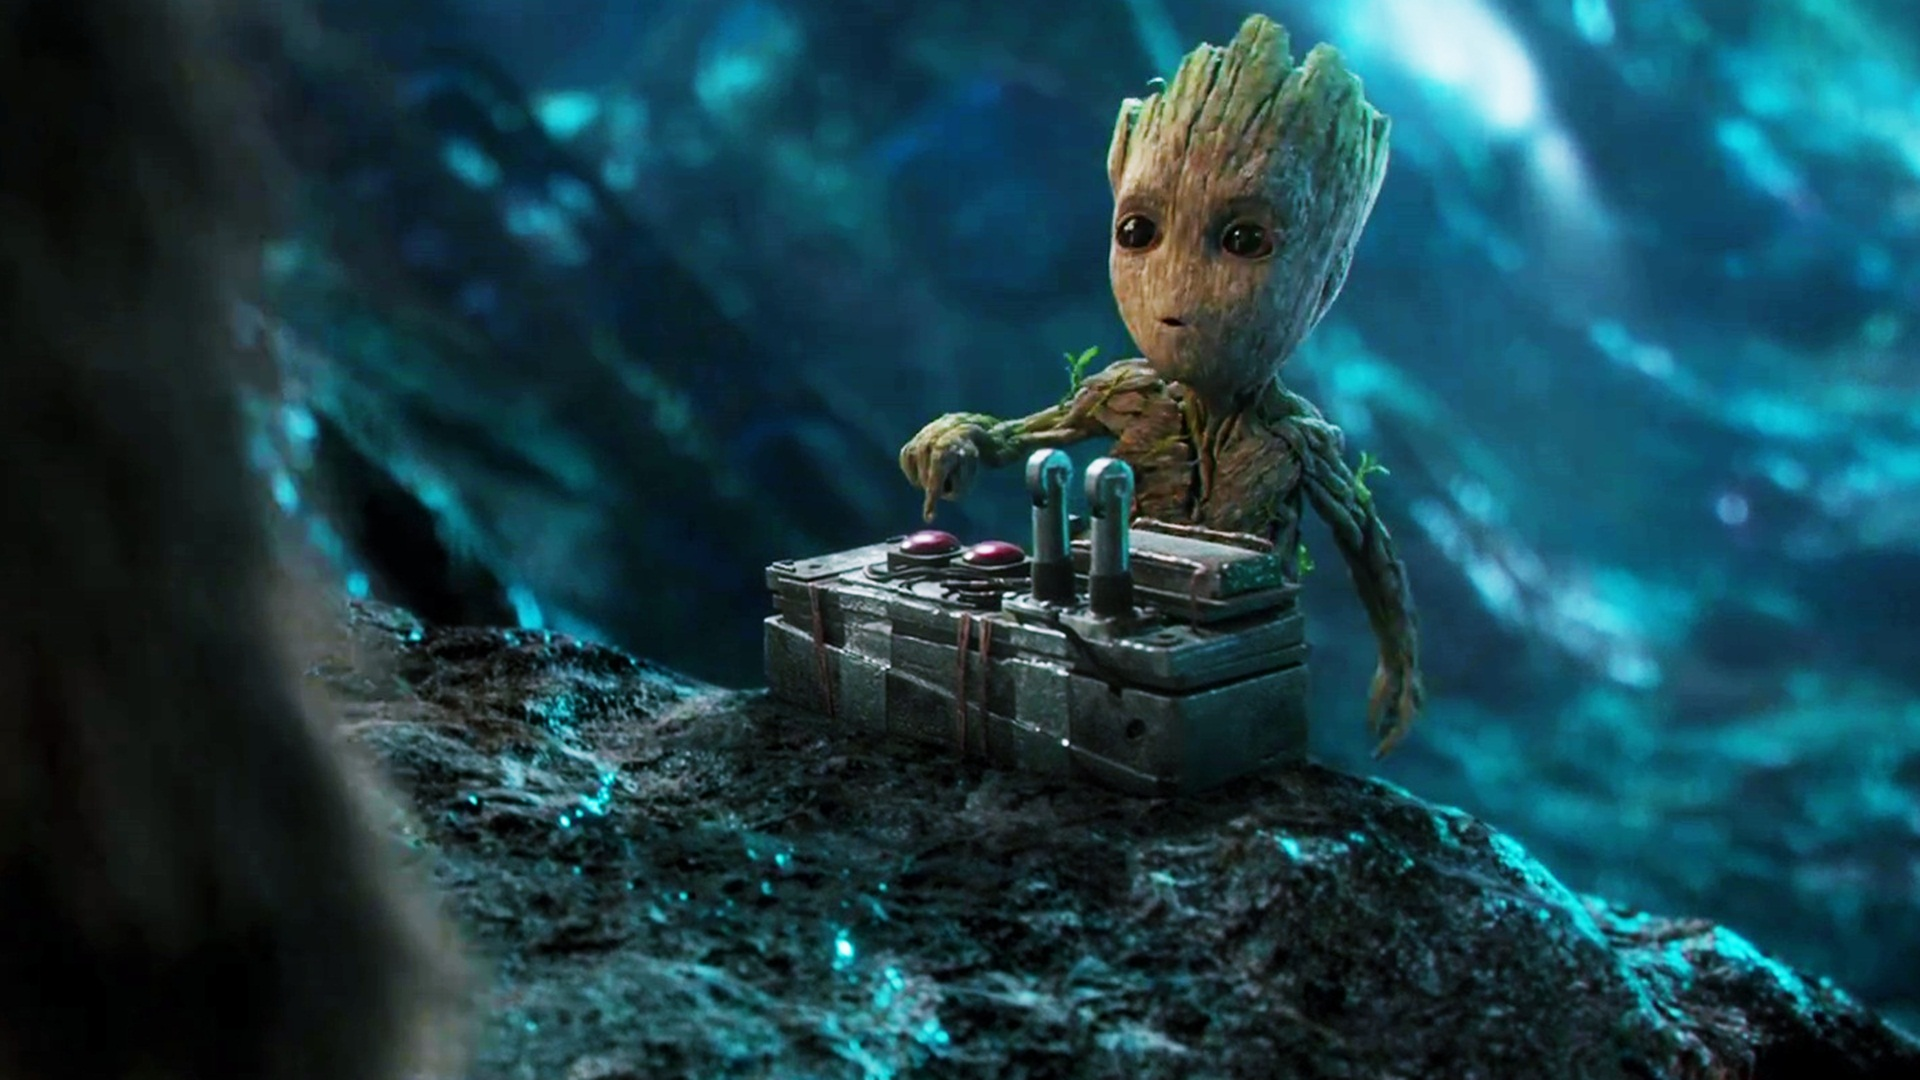 Free Download Guardians Of The Galaxy Vol 2 Groot Wallpaper 11630